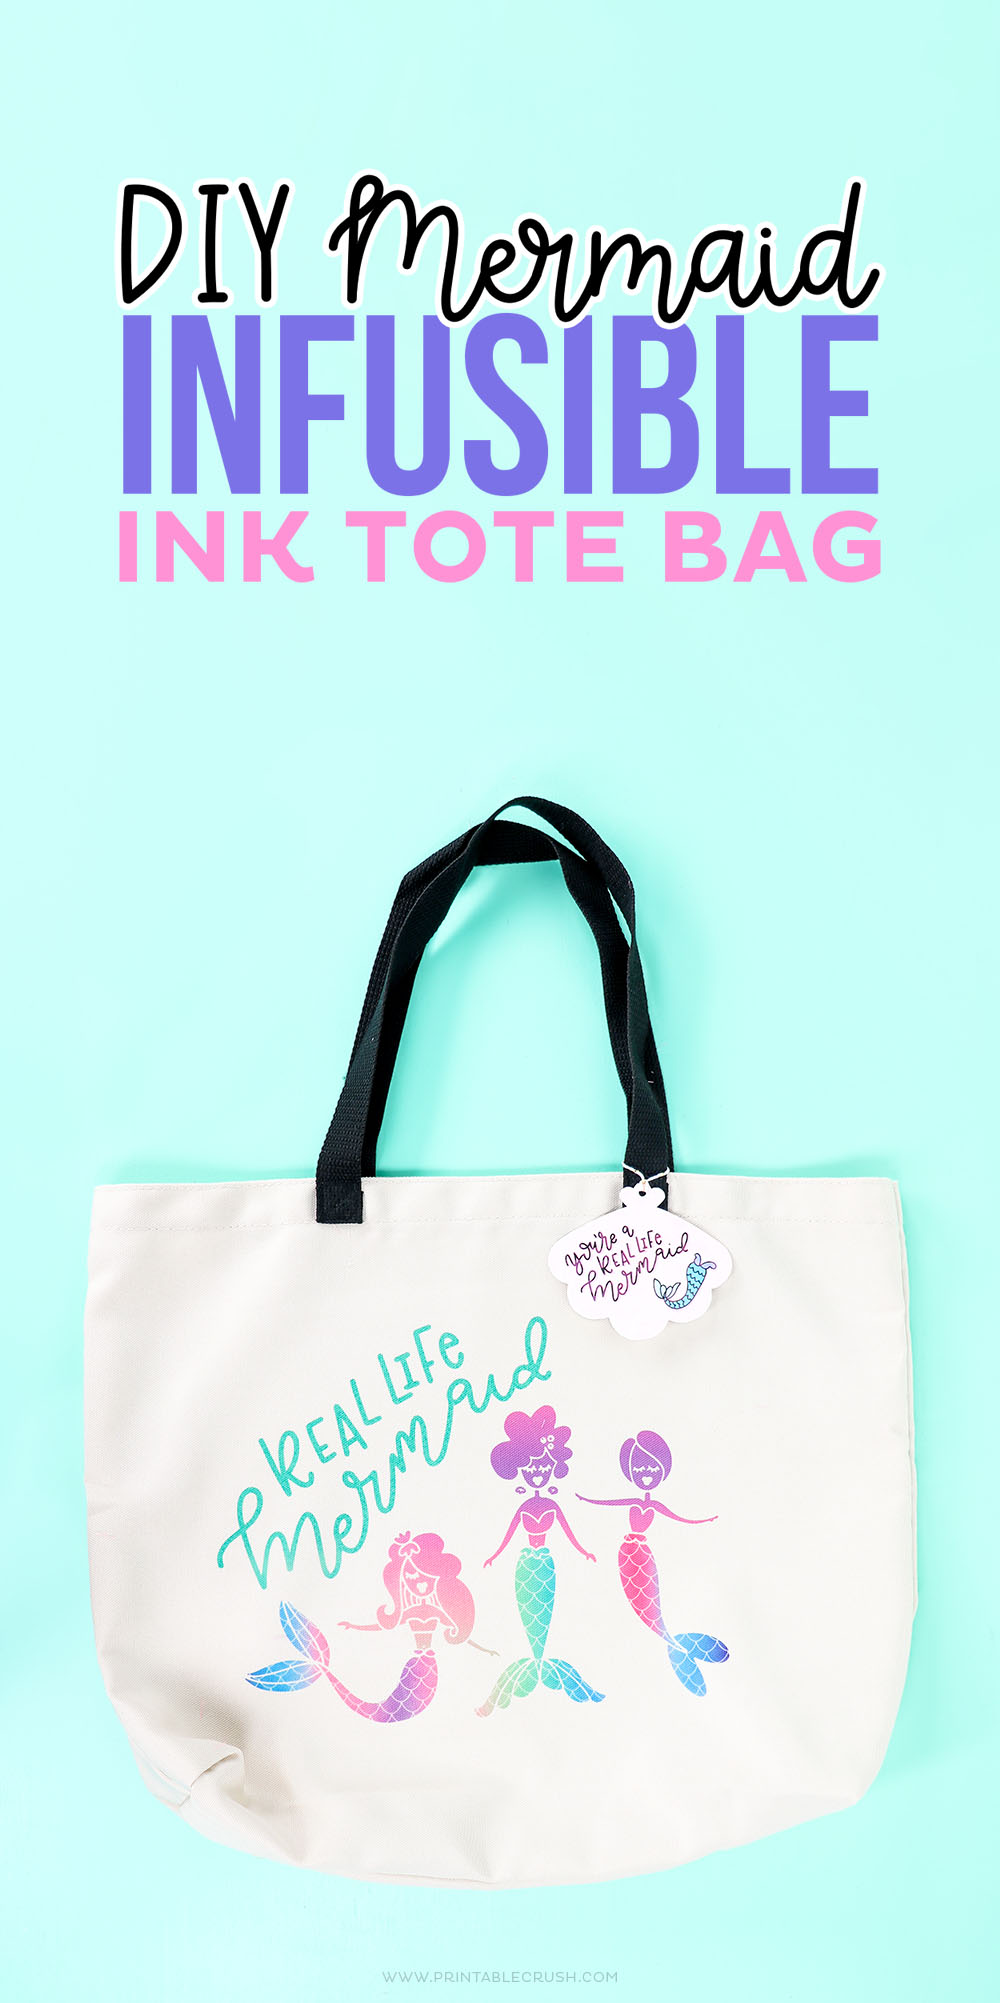 DIY Infusible Ink Tote Bag with Mermaid Design